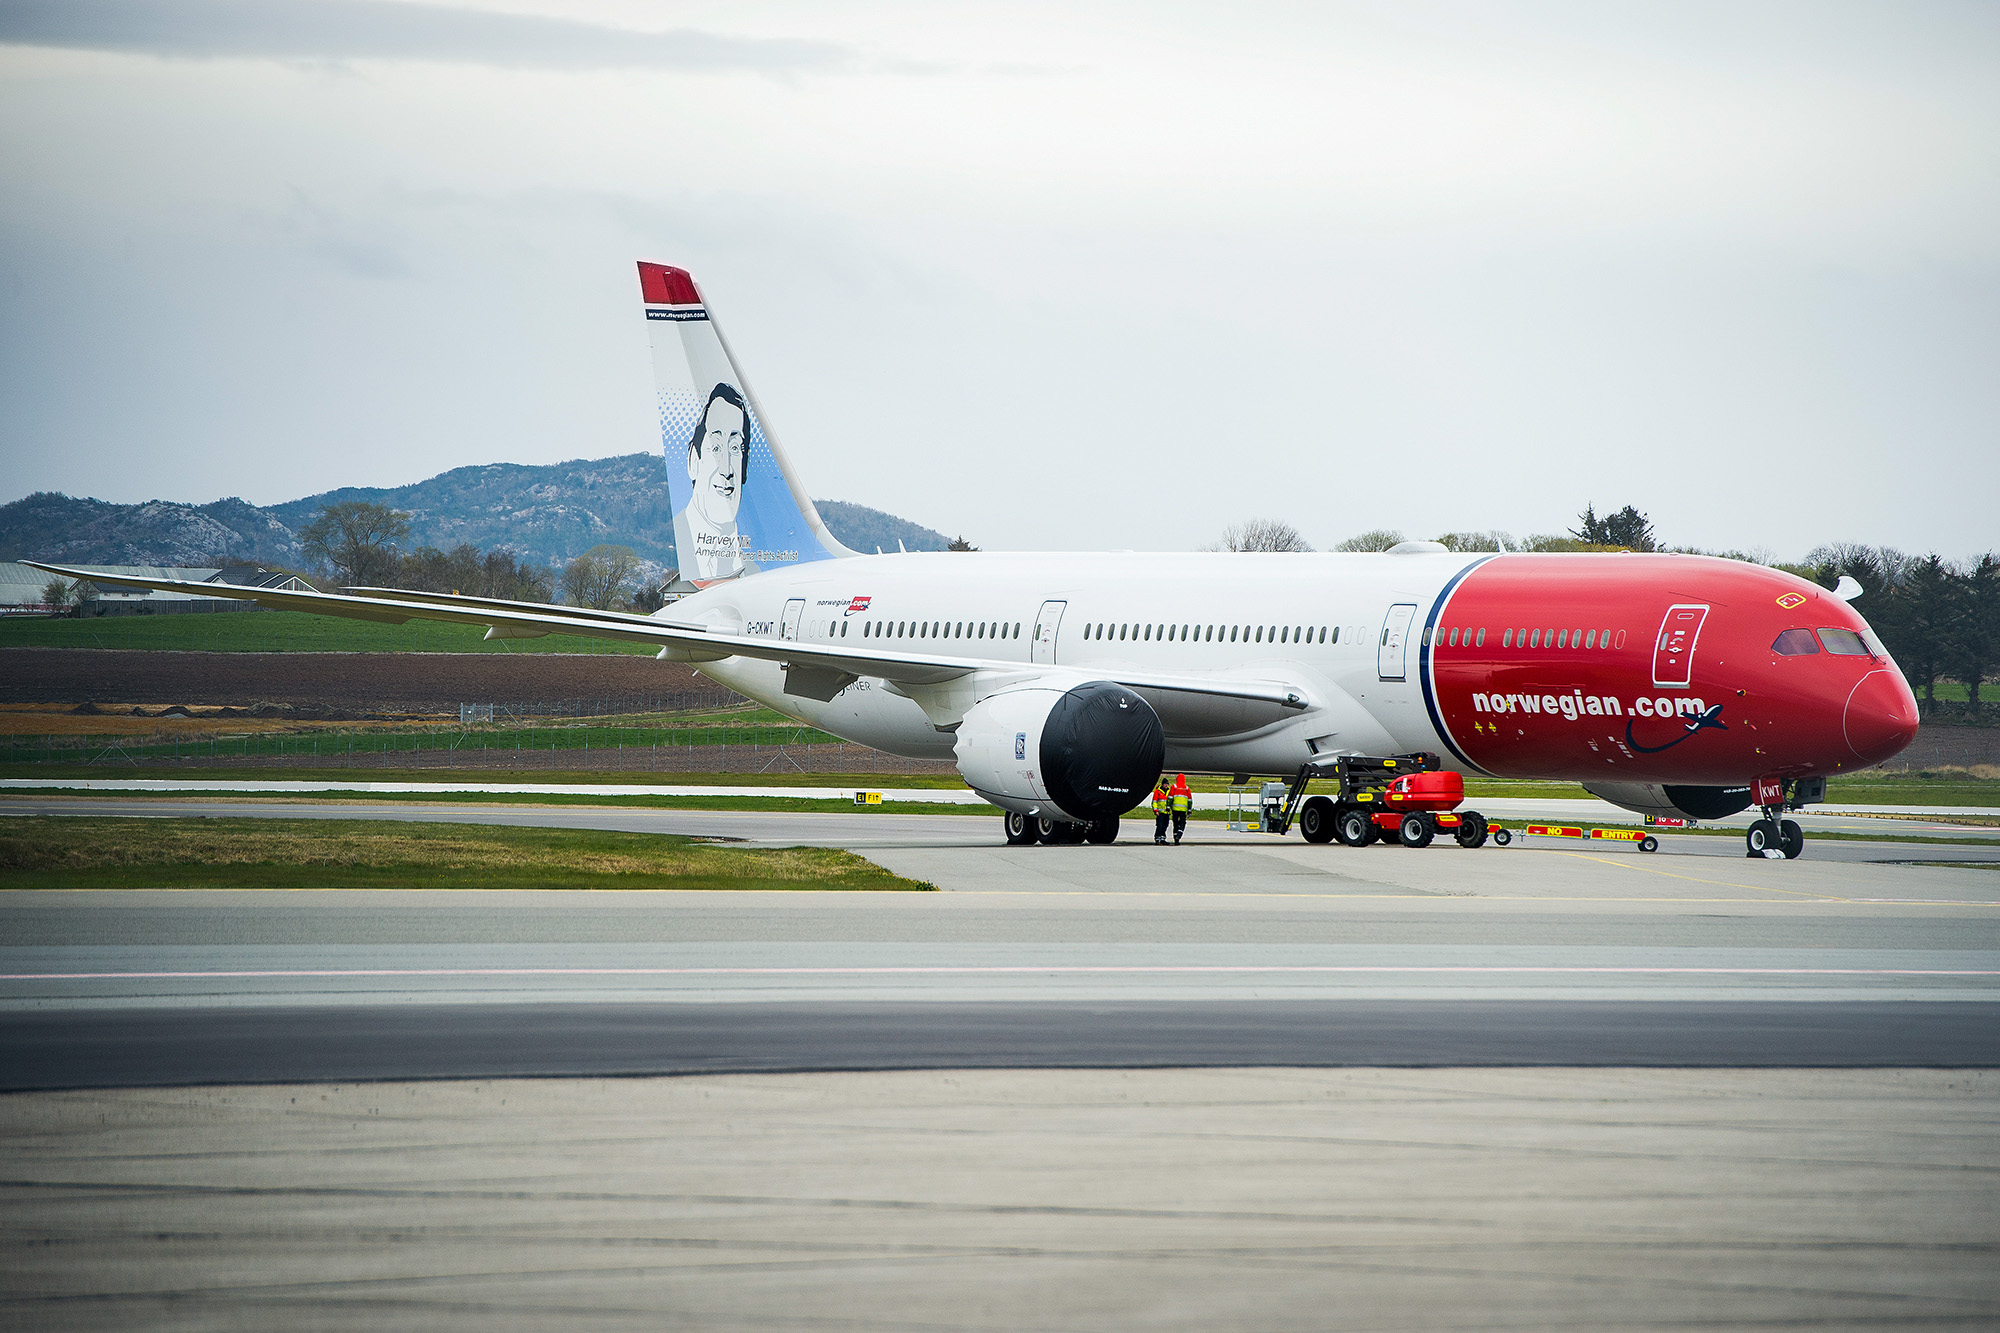 Workers wearing high-visibility jackets stand near a passenger aircraft, operated by Norwegian Air Shuttle ASA, grounded at Stavanger Airport in Stavanger, Norway, on April 30.